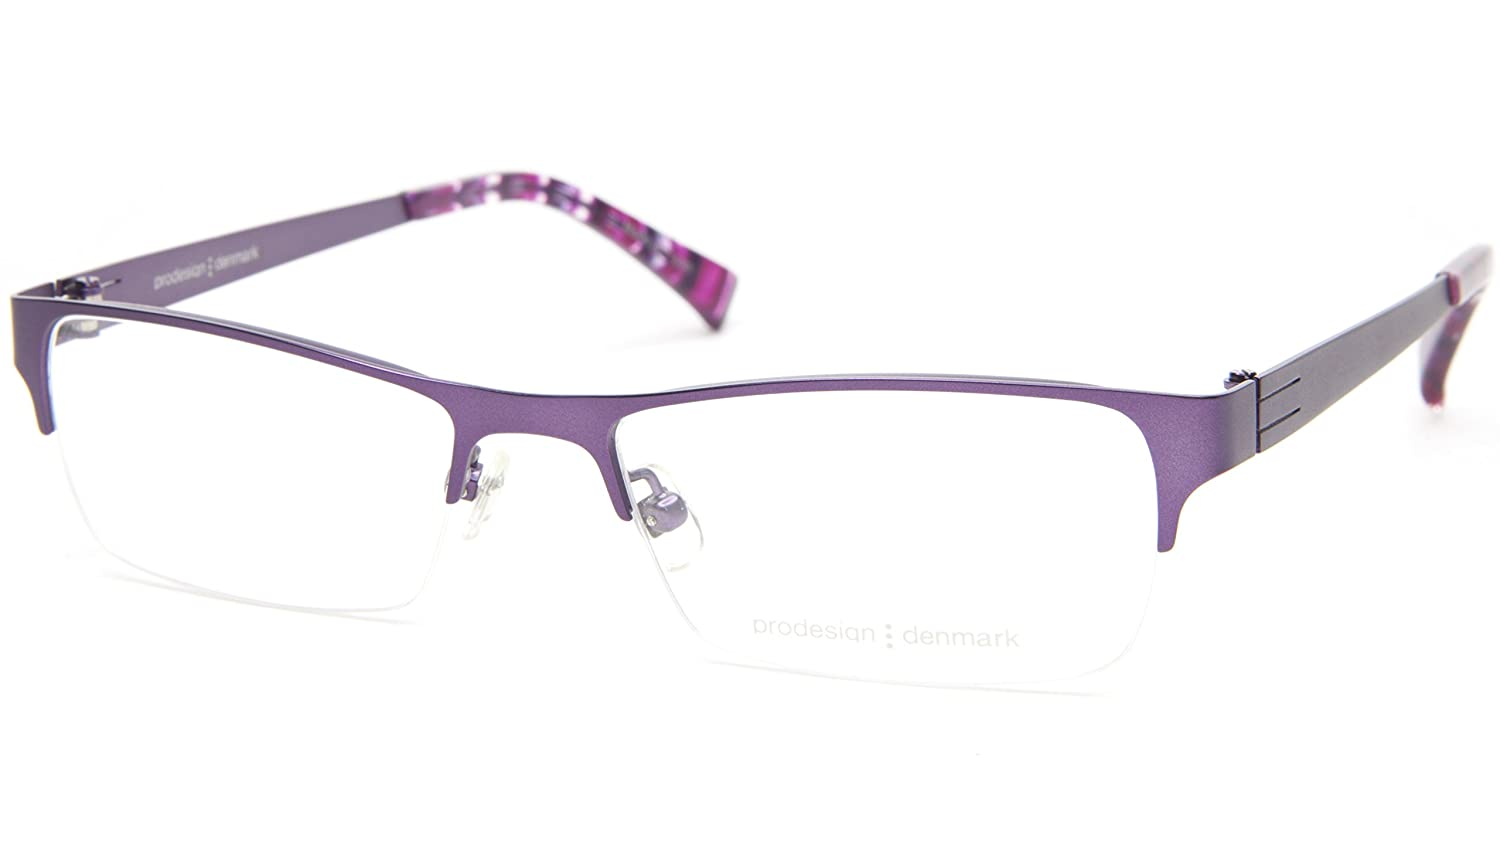 eaaf16defa7 Amazon.com  NEW PRODESIGN DENMARK 1247 c.3531 VIOLET EYEGLASSES FRAME  50-16-140 IF B28 Japan  Clothing